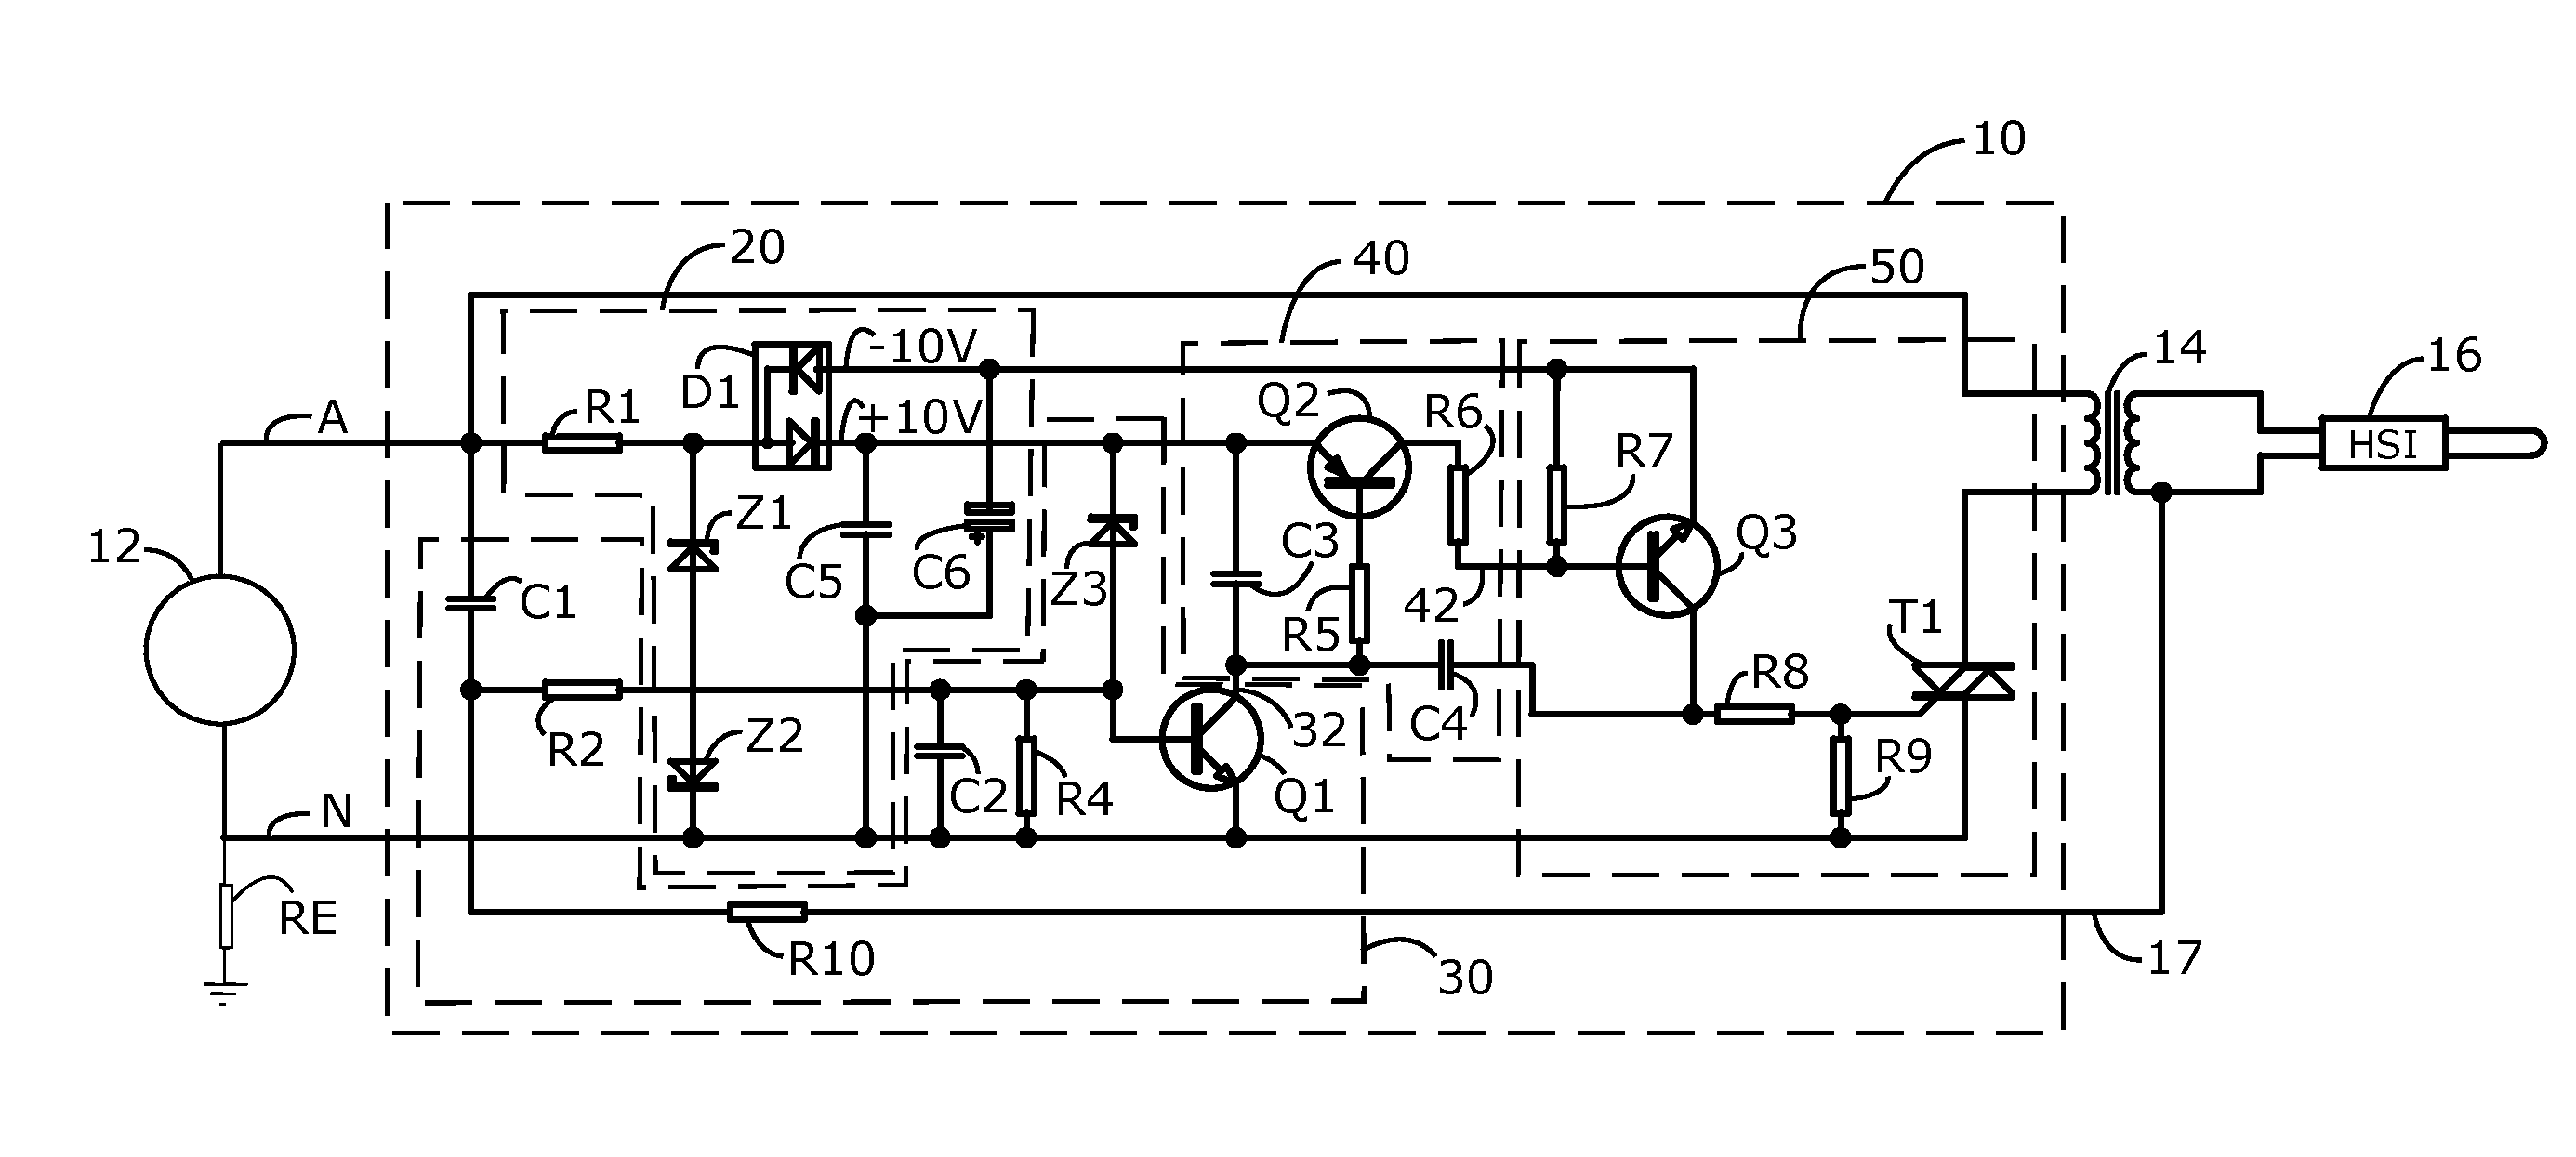 Patent us20120094240 hot surface re ignition controller google patent drawing pooptronica